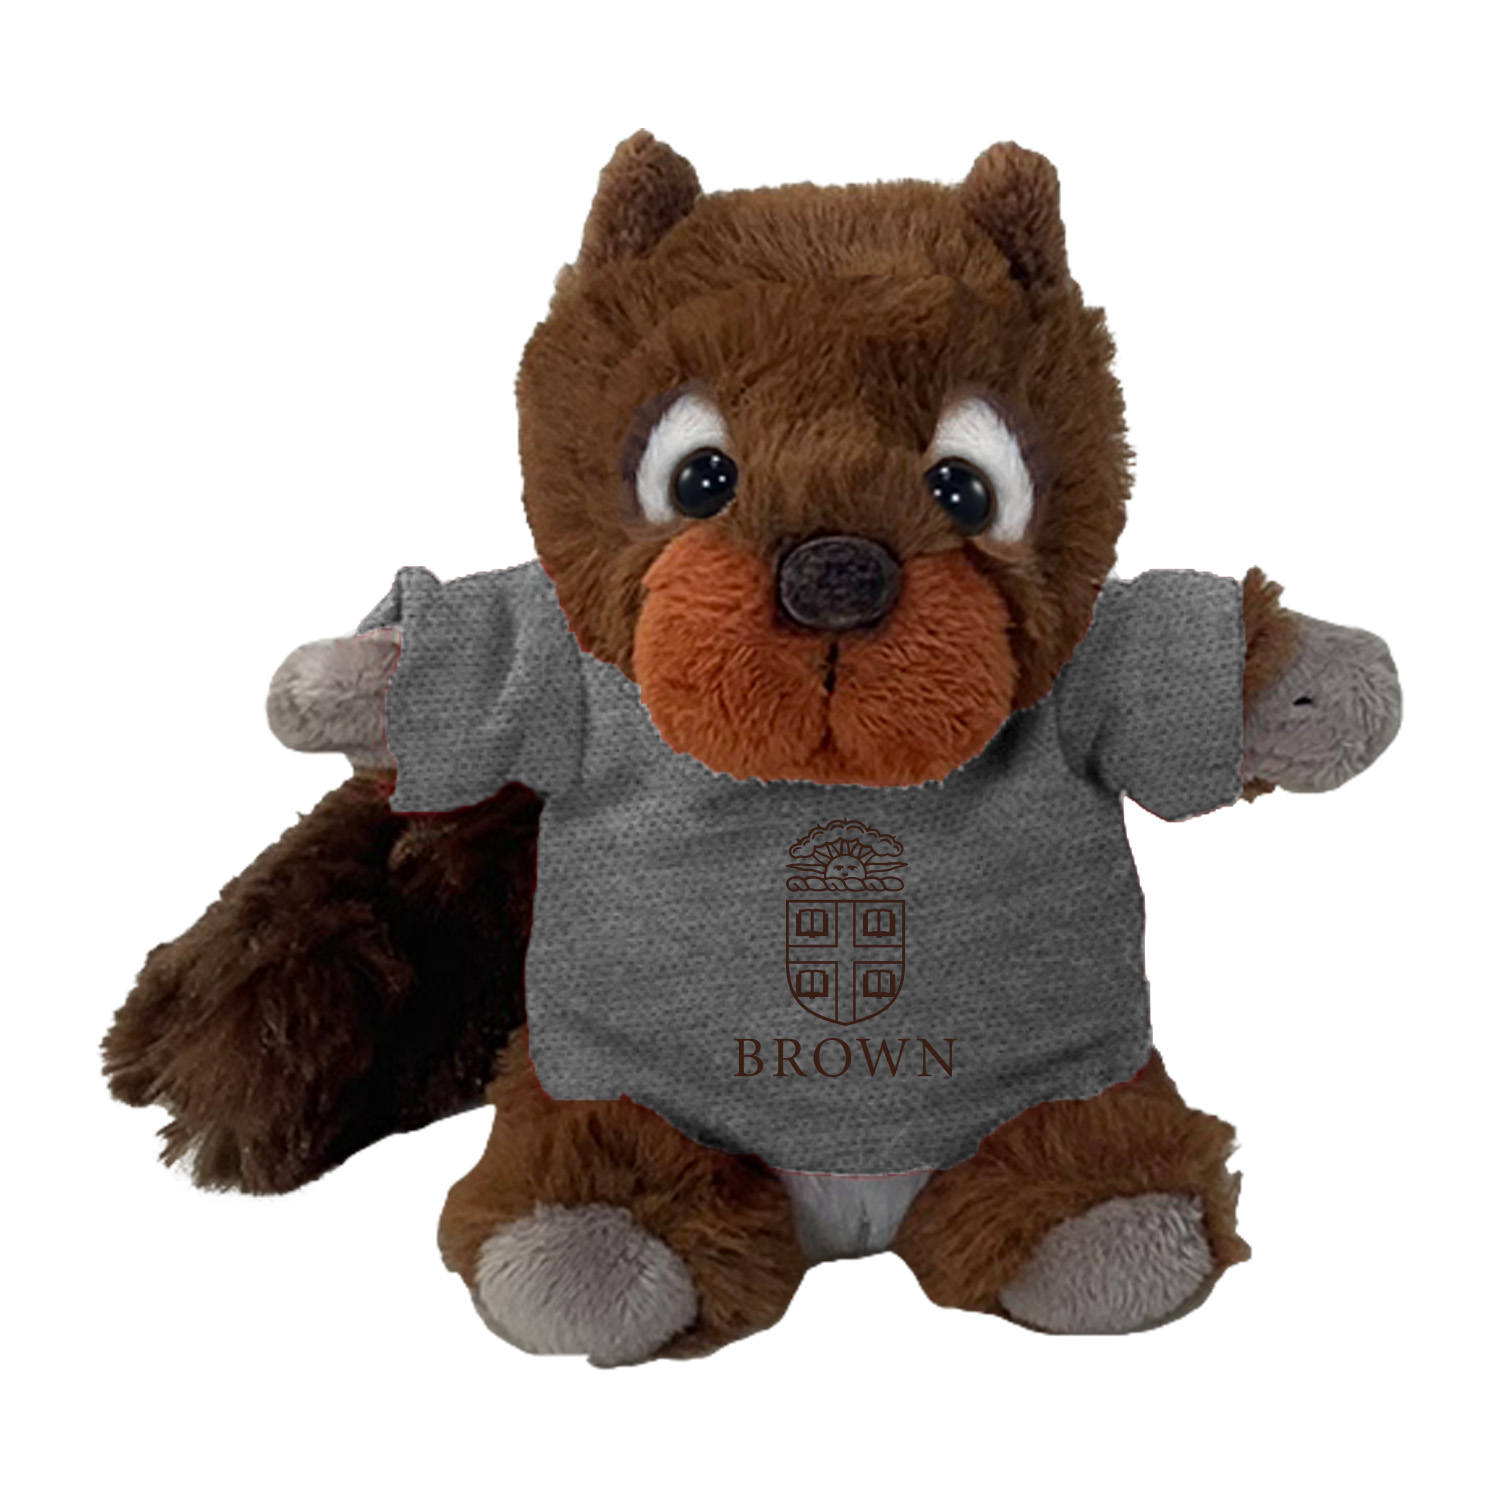 Image For Mascot Factory Plush - Cheeky Red Squirrel w/Brown Tee